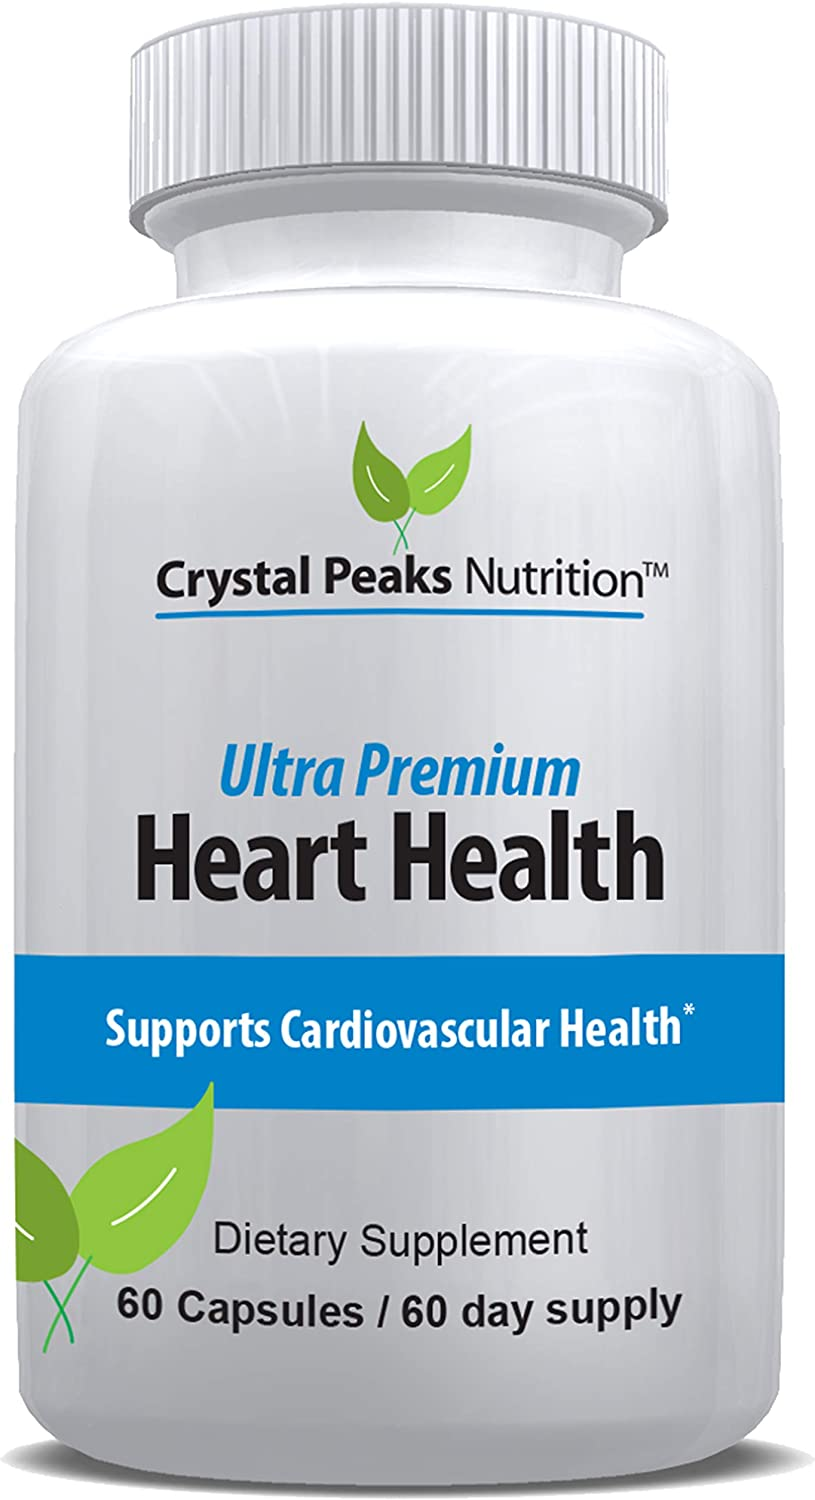 Heart Health Supplement with Vitamin K2 (mk-7) + D3 + Calcium | Lower Blood Pressure and Cholesterol while Cleansing Arteries of Plaque | Supports Cardiovascular health, Improved Circulation and Lower